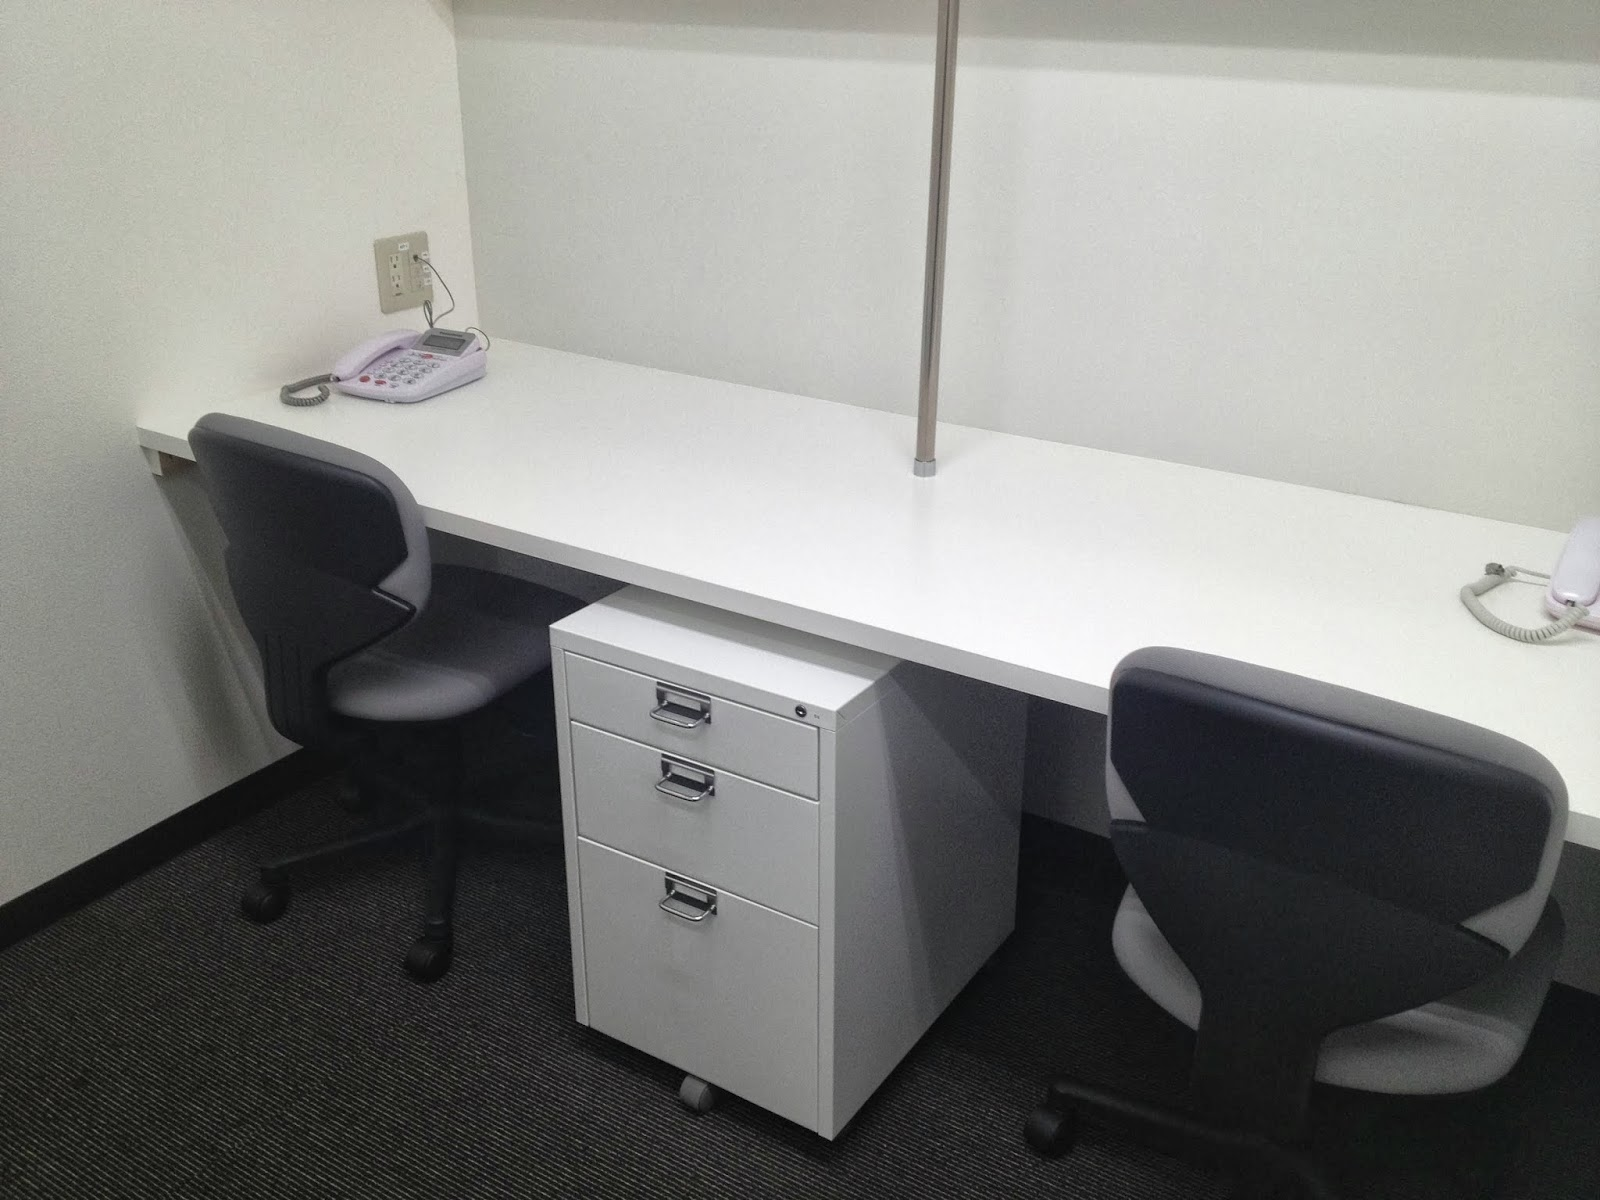 2 Person Alex Desk2 Person Alex Desk - desk-for-two-persons-with-cabinet-and-drawers-in-the-center-two-units-of-movable-office-chairs-two-telephone-sets_Best 2 Person Alex Desk2 Person Alex Desk - desk-for-two-persons-with-cabinet-and-drawers-in-the-center-two-units-of-movable-office-chairs-two-telephone-sets  Graphic_381988.jpg